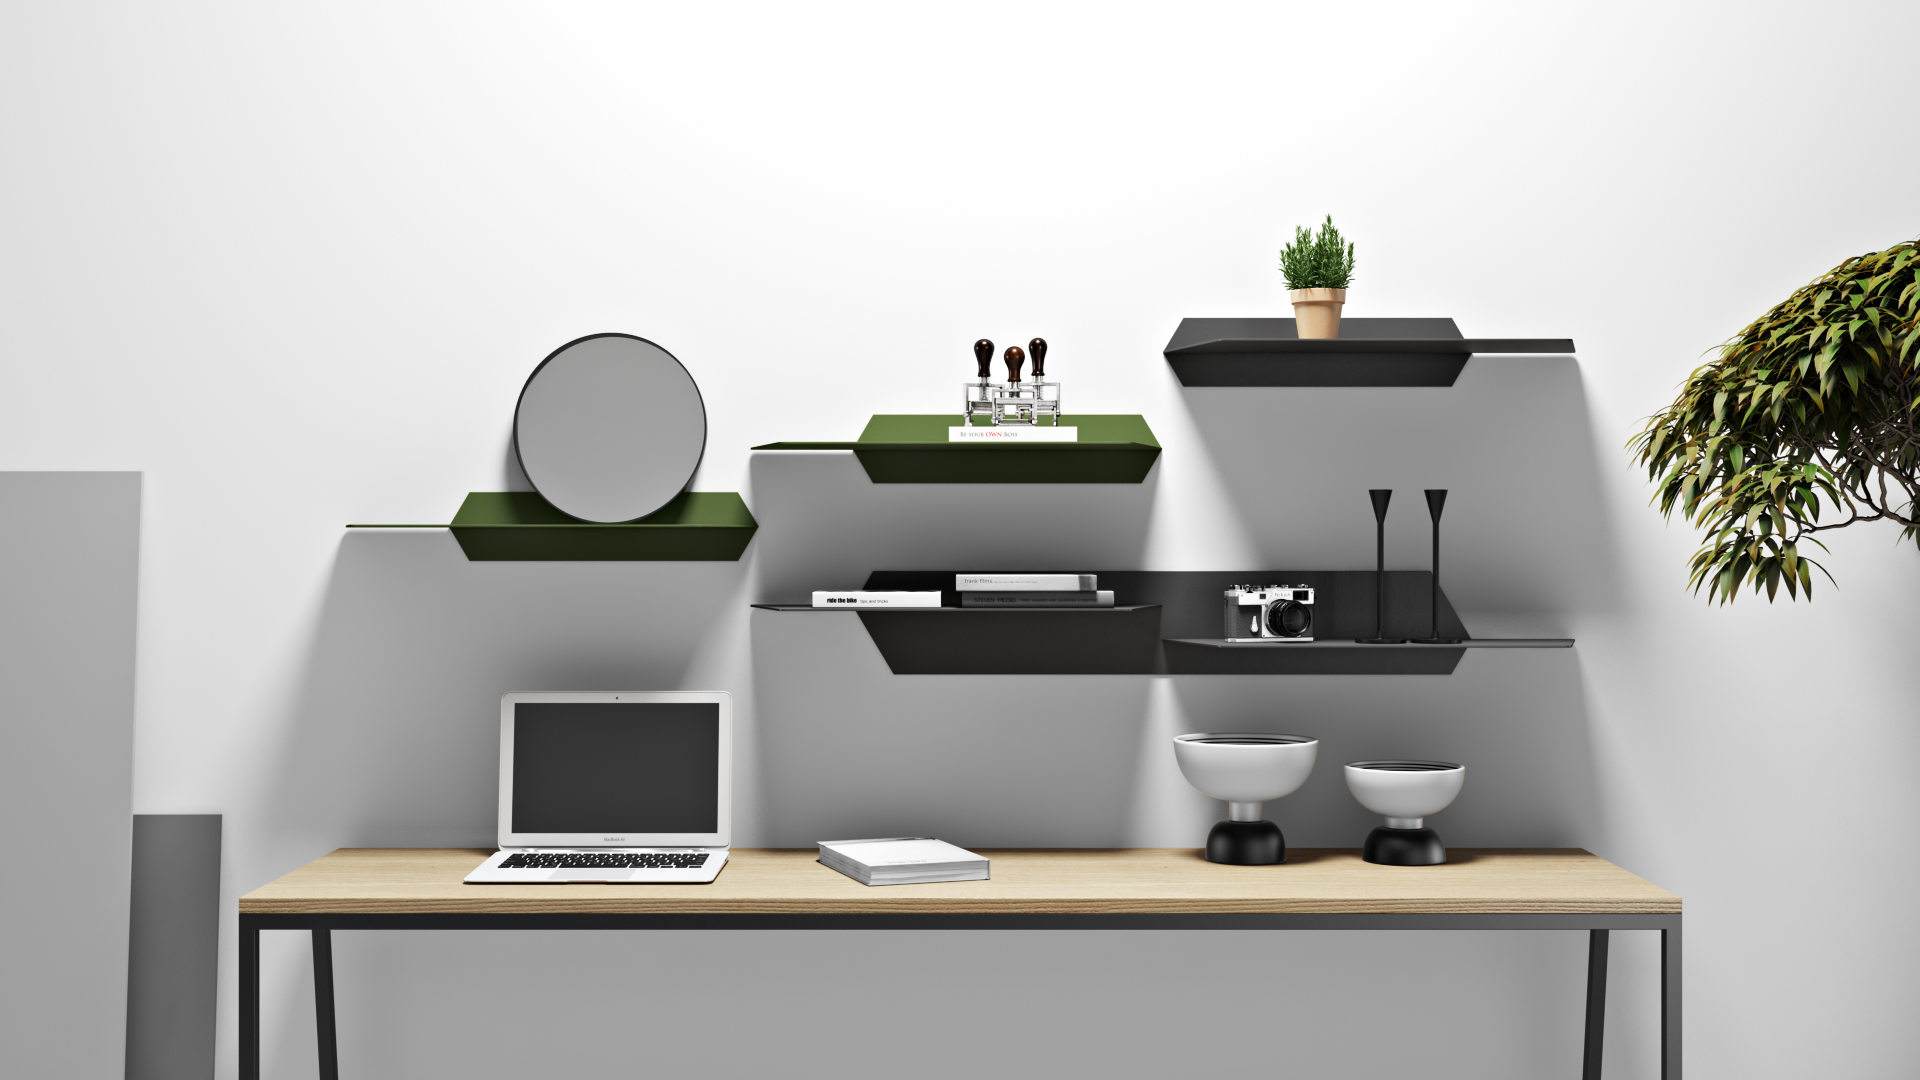 Horizon_Shelves (7)